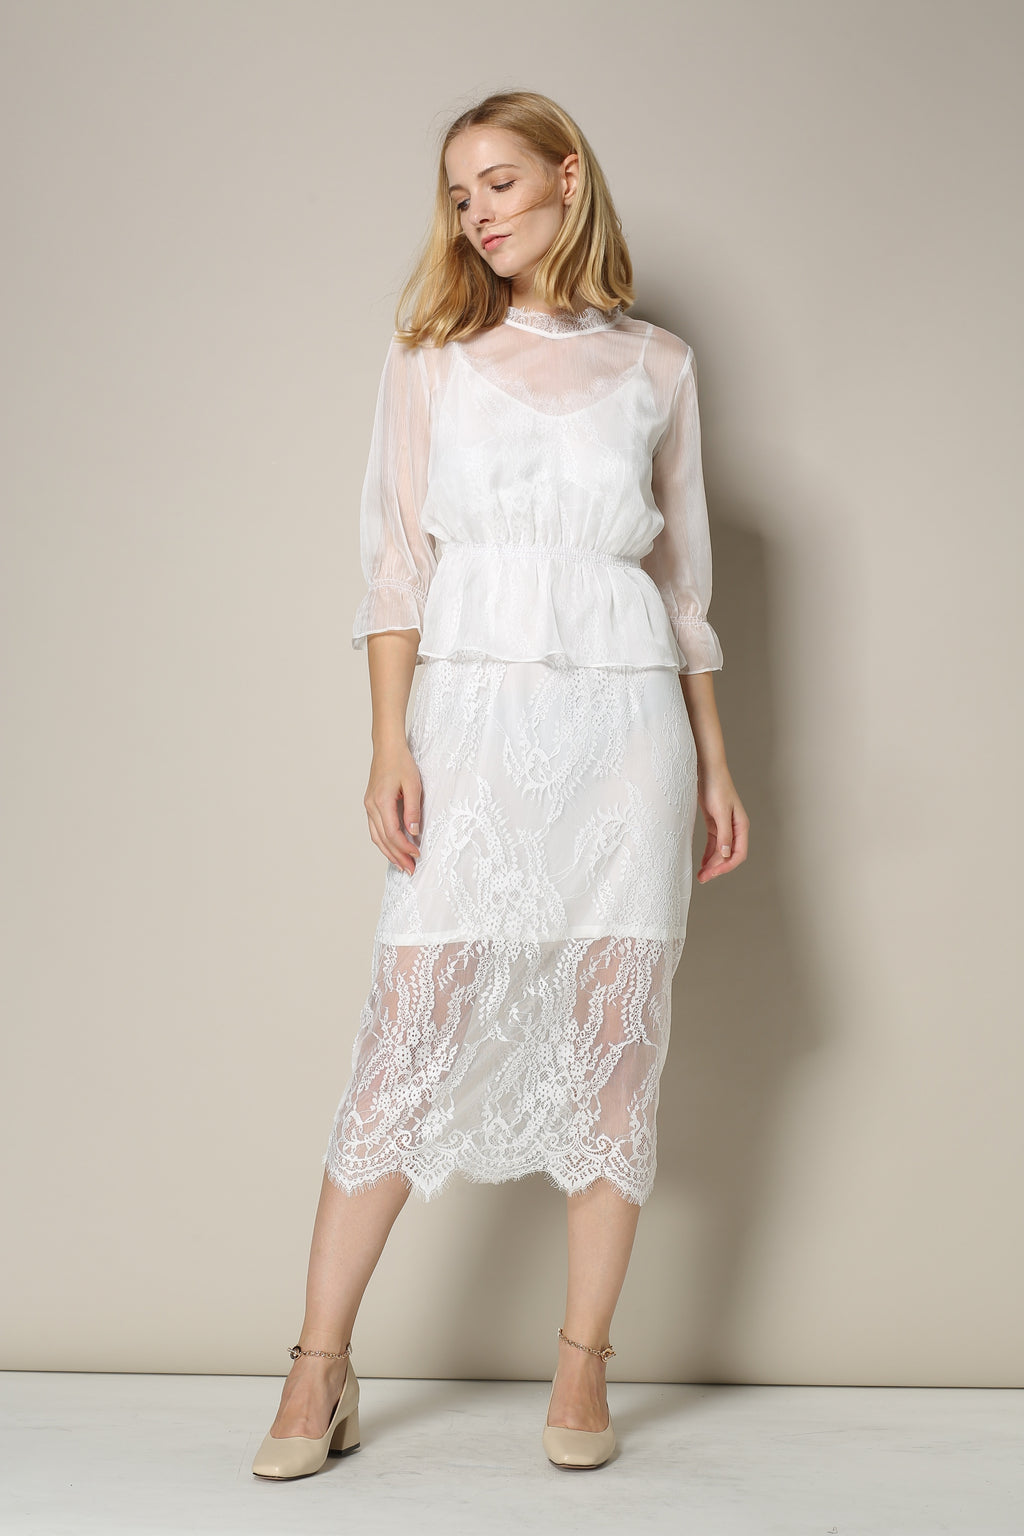 White Sheath Lace Dress With Sheer Shirt